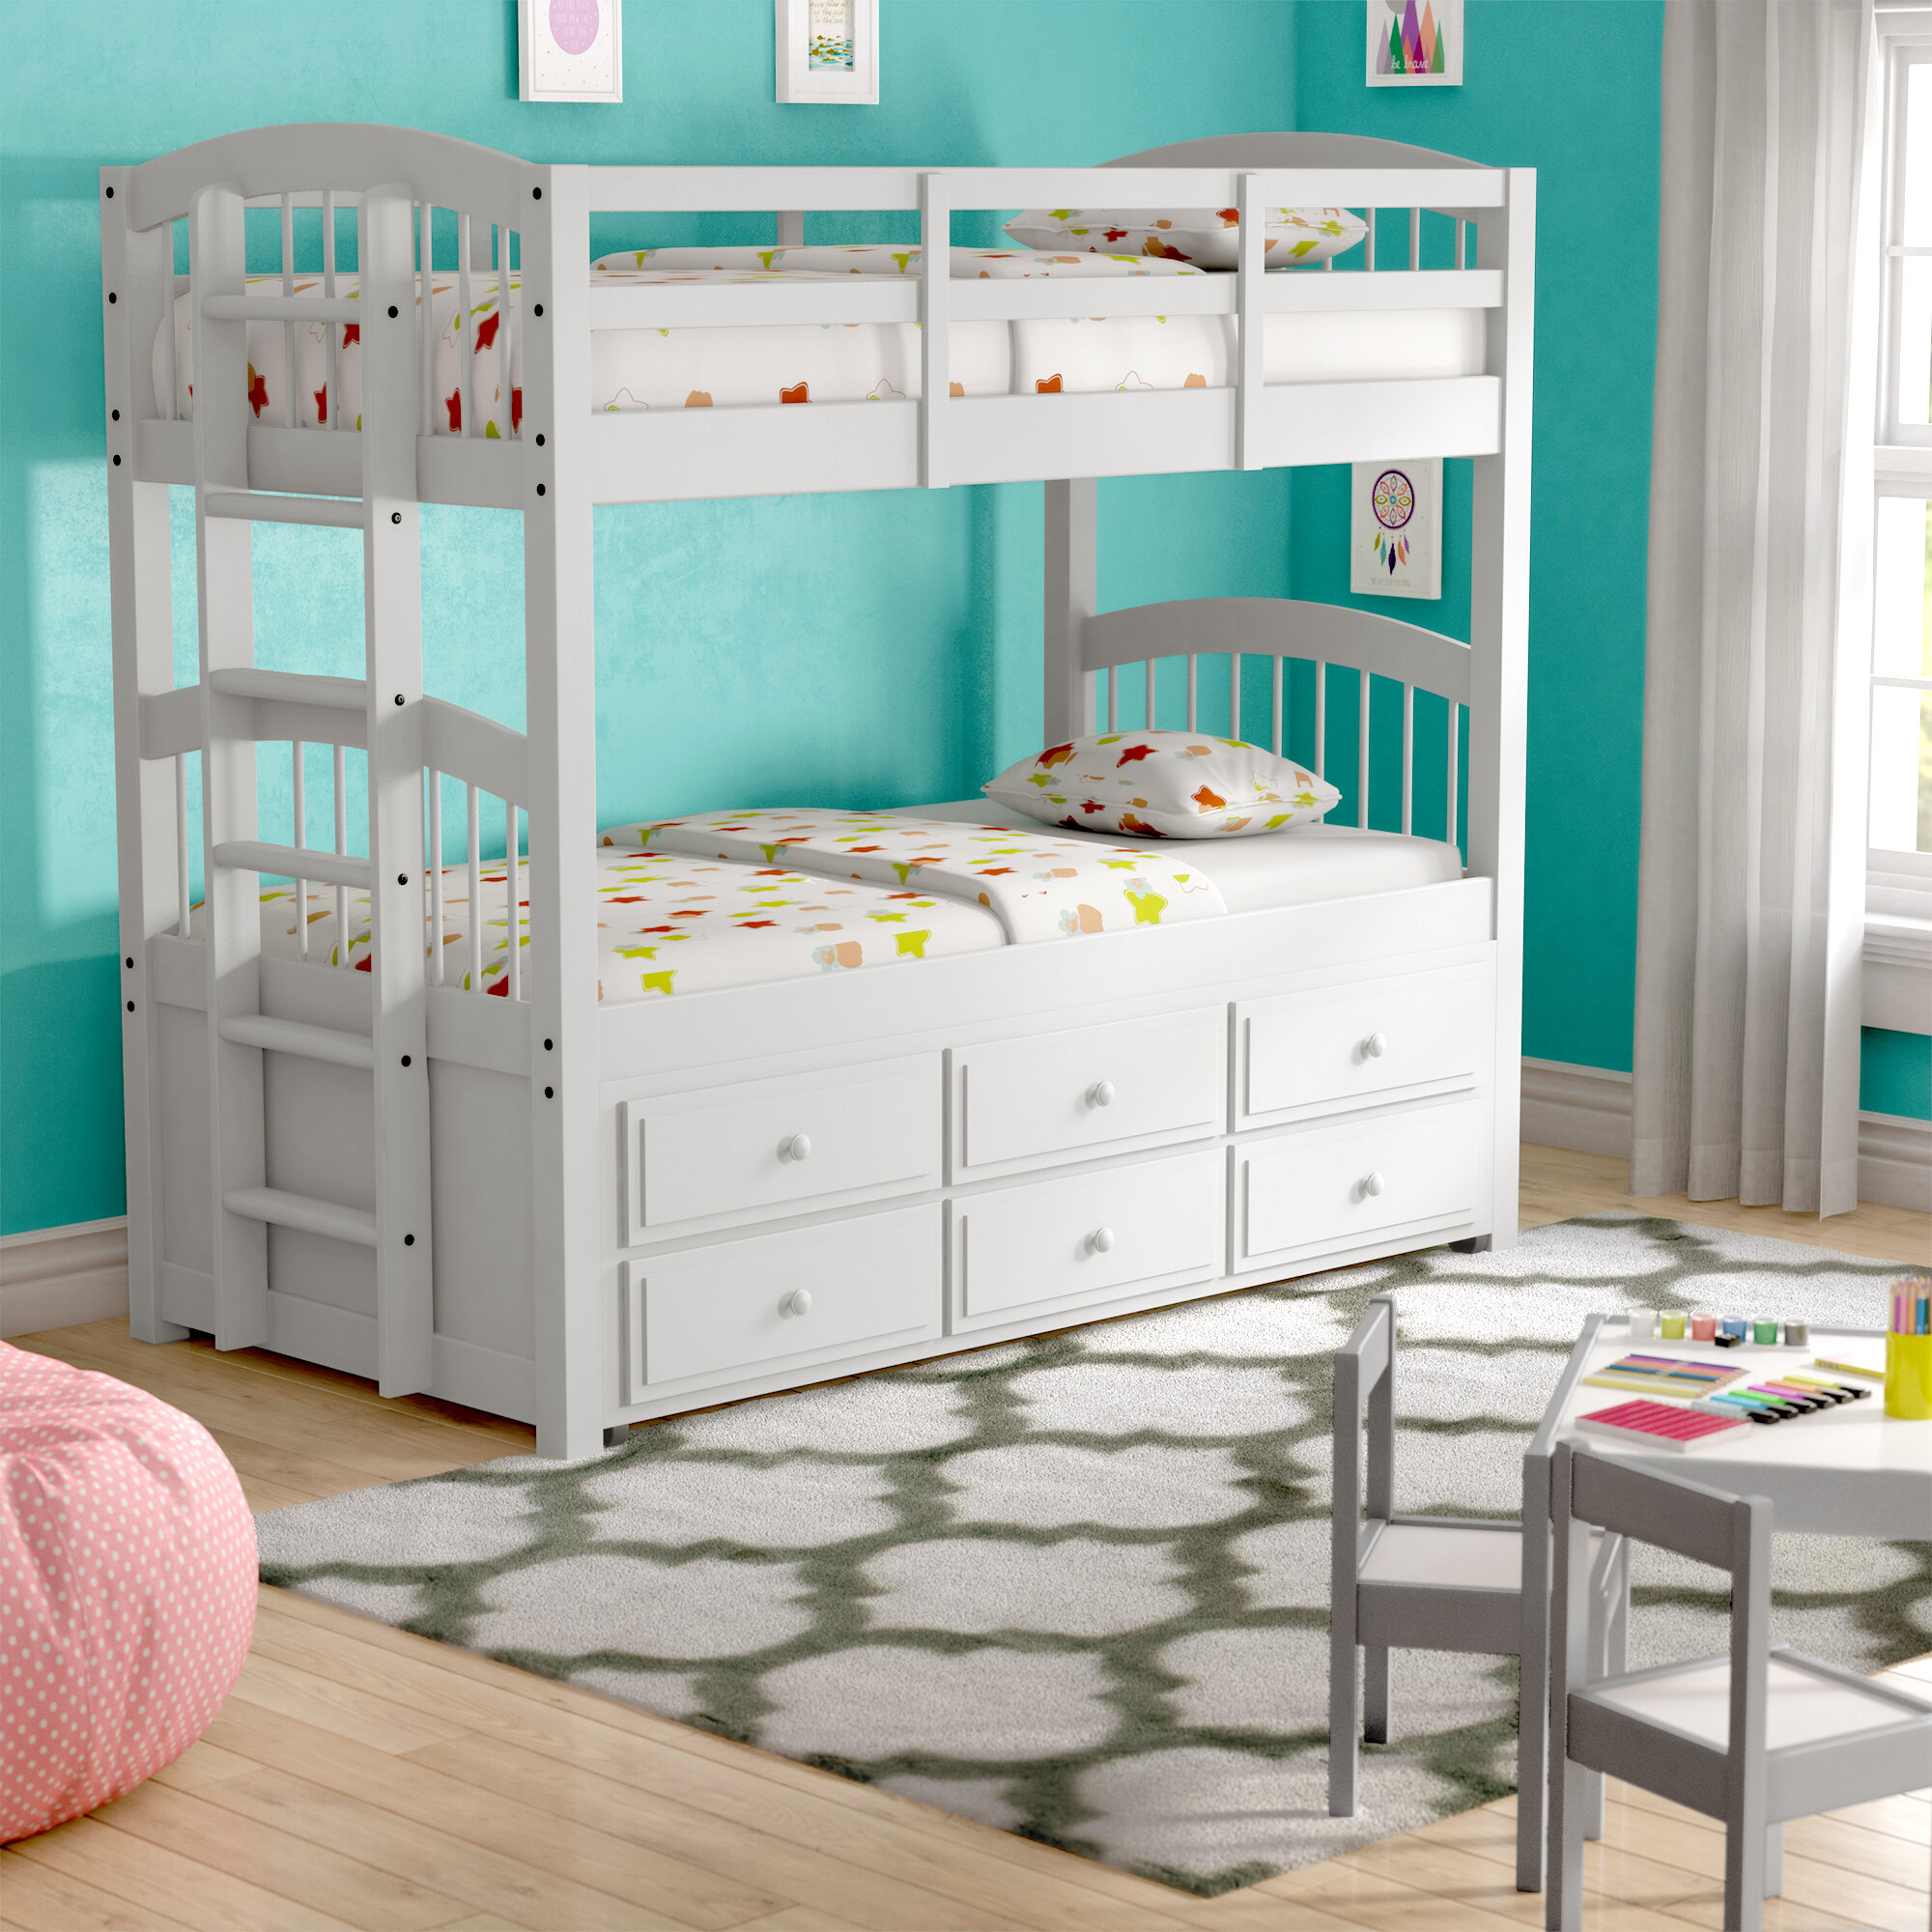 Picture of: Harriet Bee Octavius Twin Bunk Bed With Trundle And Drawers Reviews